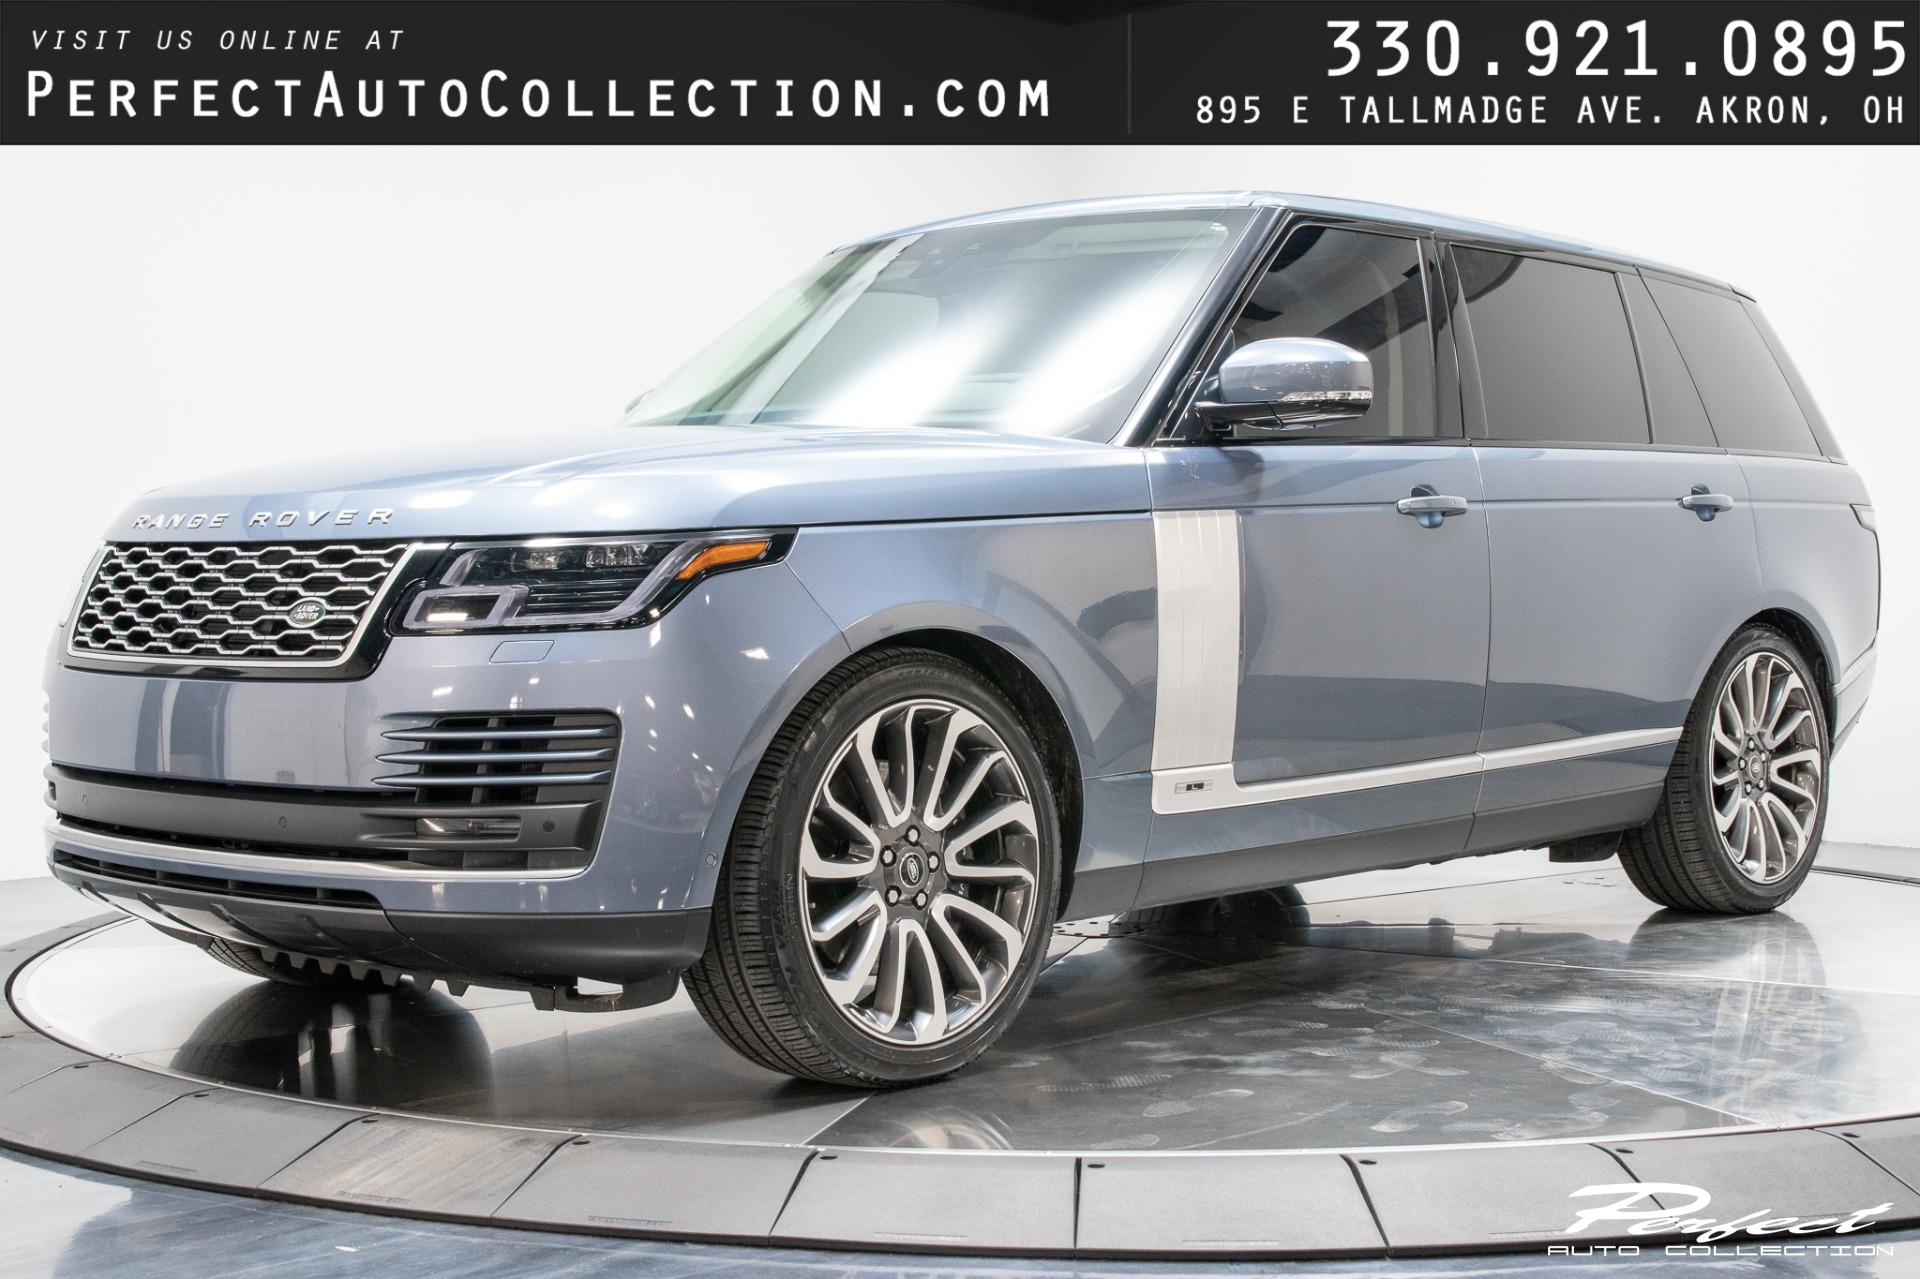 Used 2020 Land Rover Range Rover Supercharged LWB for sale Sold at Perfect Auto Collection in Akron OH 44310 1